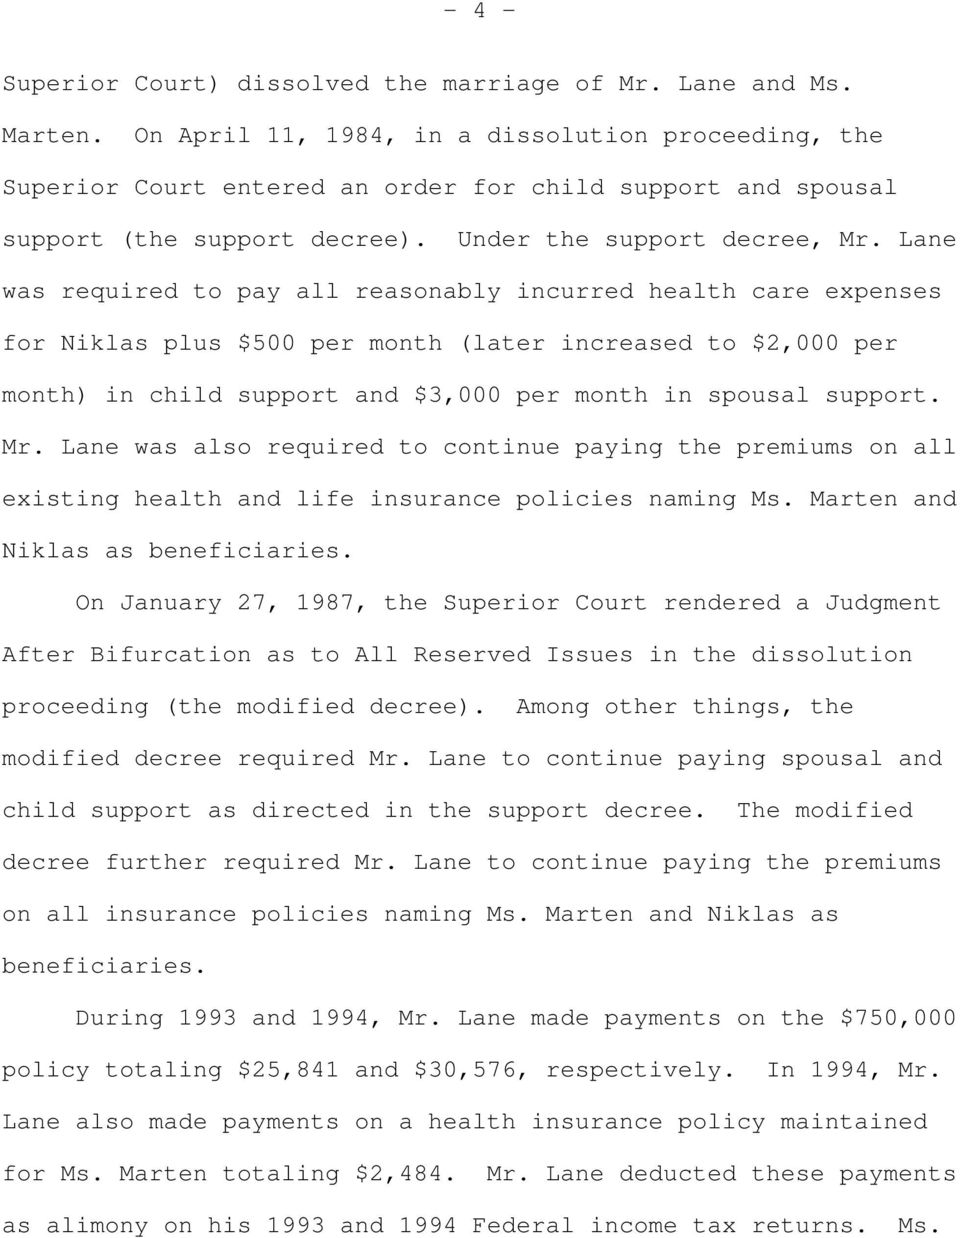 Lane was required to pay all reasonably incurred health care expenses for Niklas plus $500 per month (later increased to $2,000 per month) in child support and $3,000 per month in spousal support. Mr.